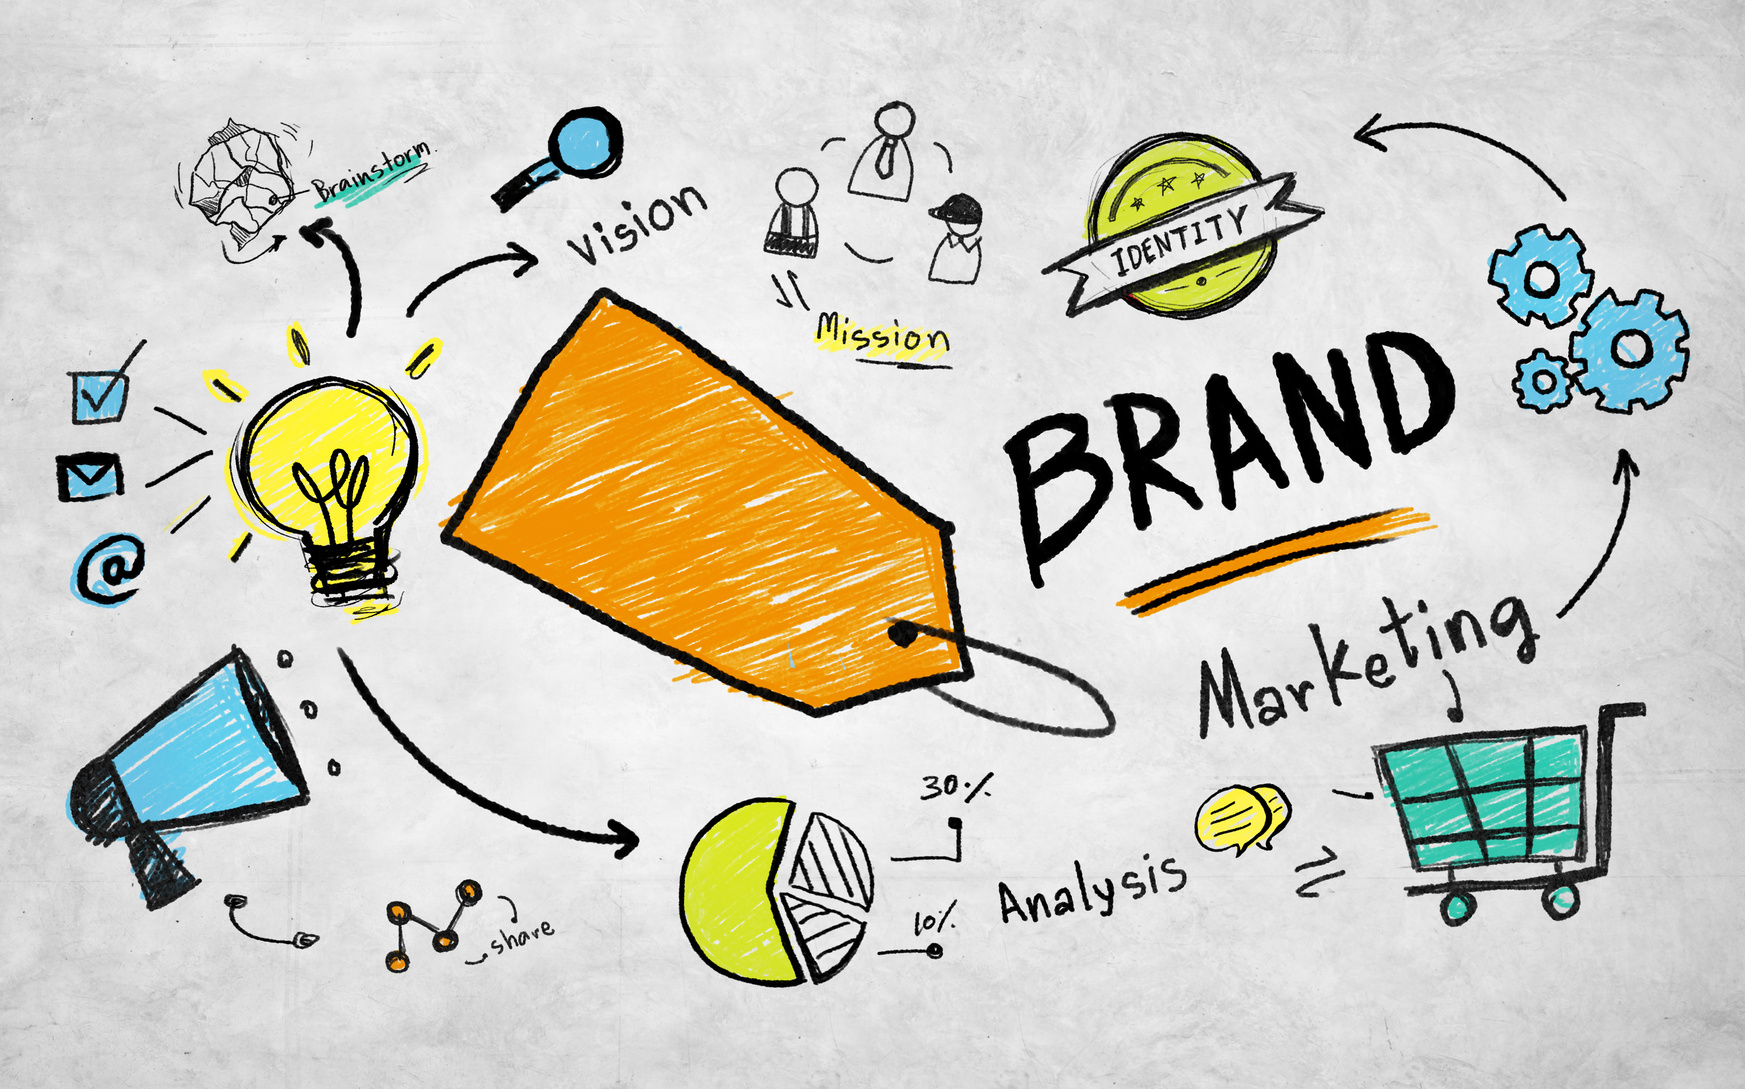 Commercial Planning Marketing Brand Concept